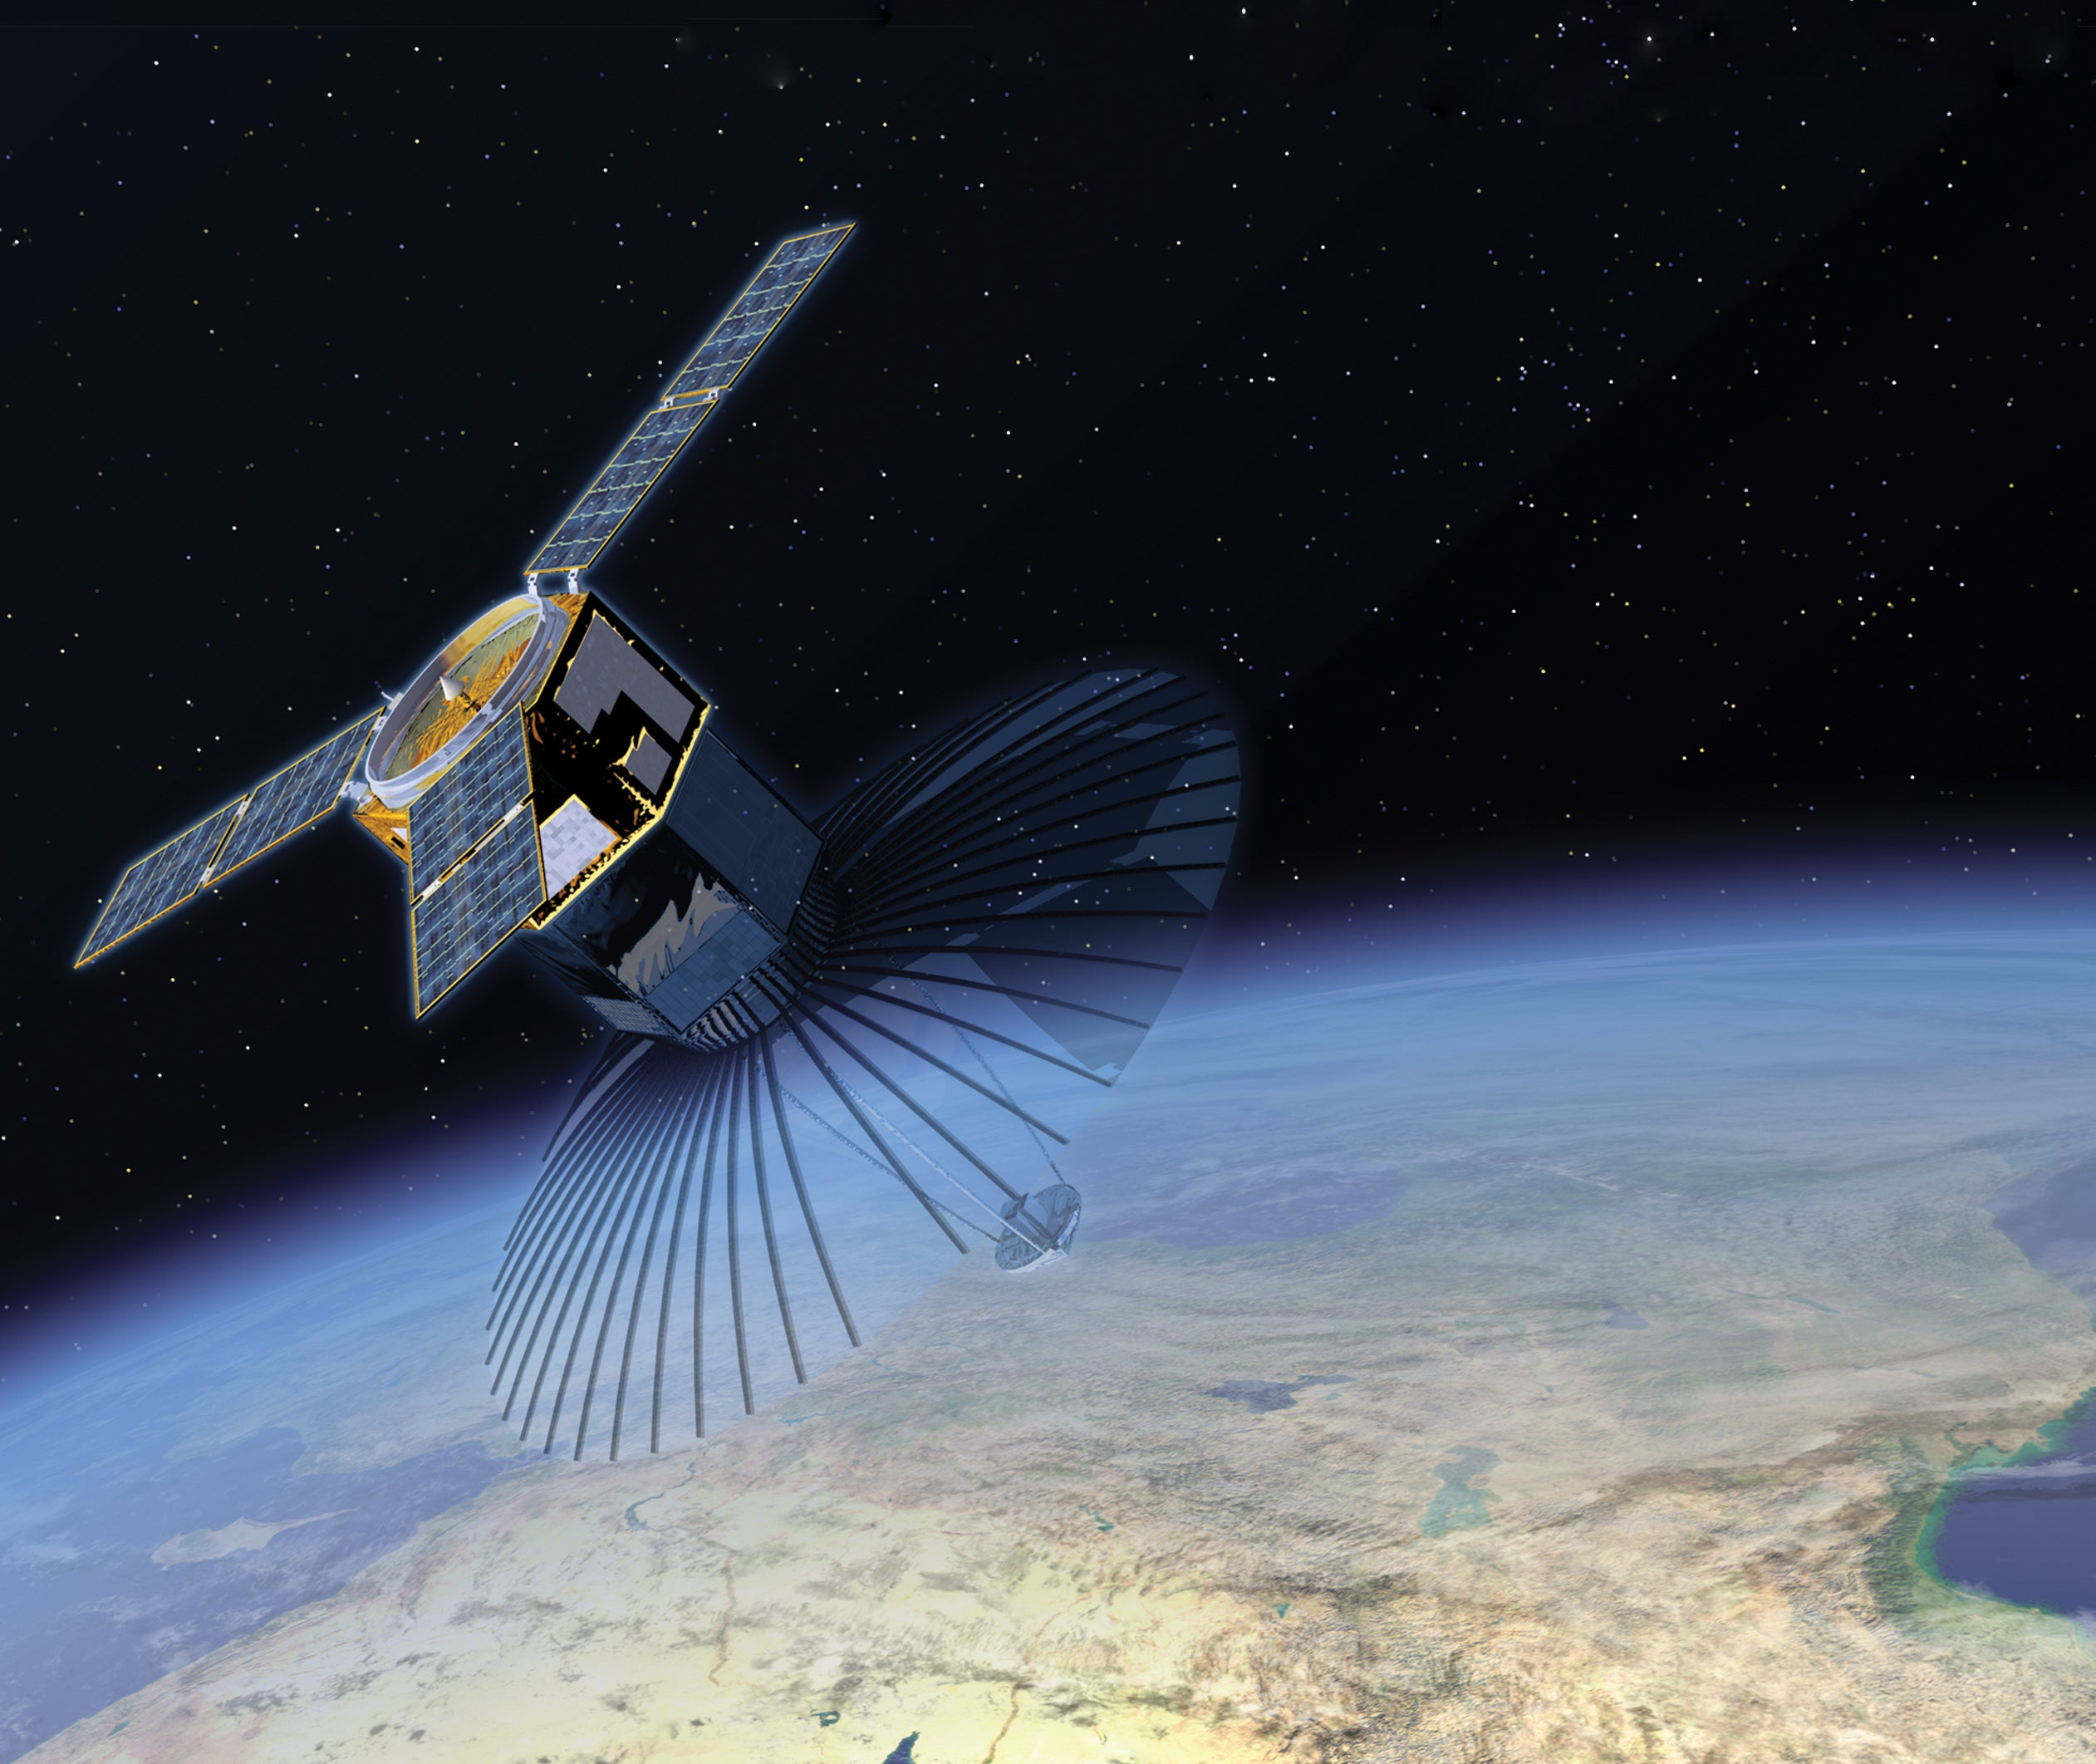 A New Defence Department Satellite Shoots Out Smaller Sats